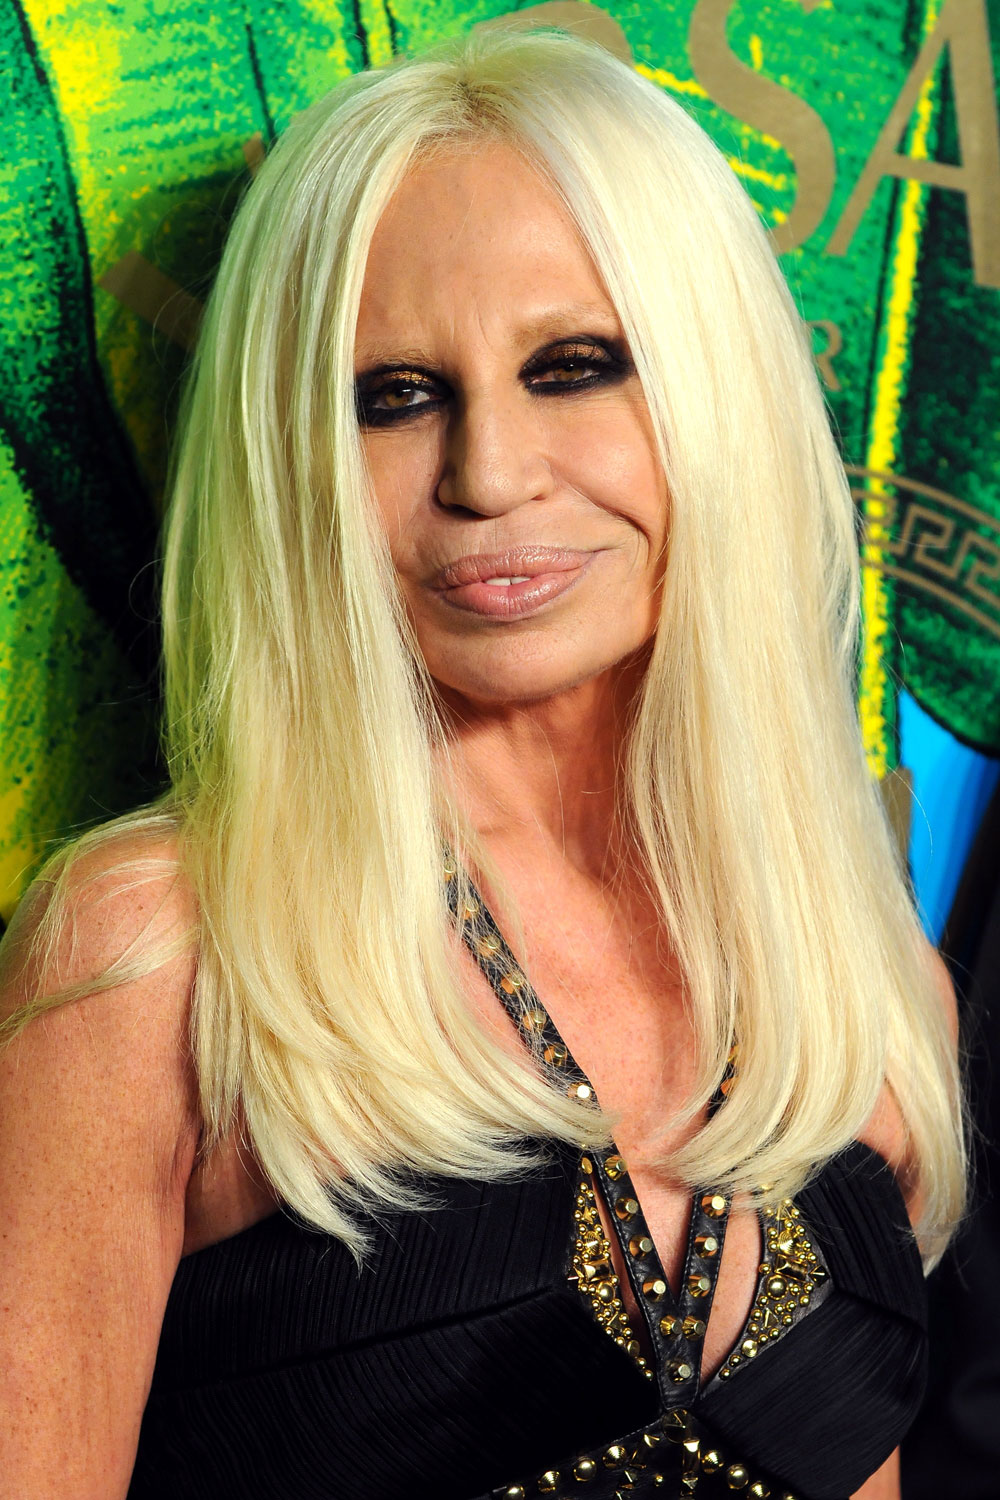 donatella versace biography